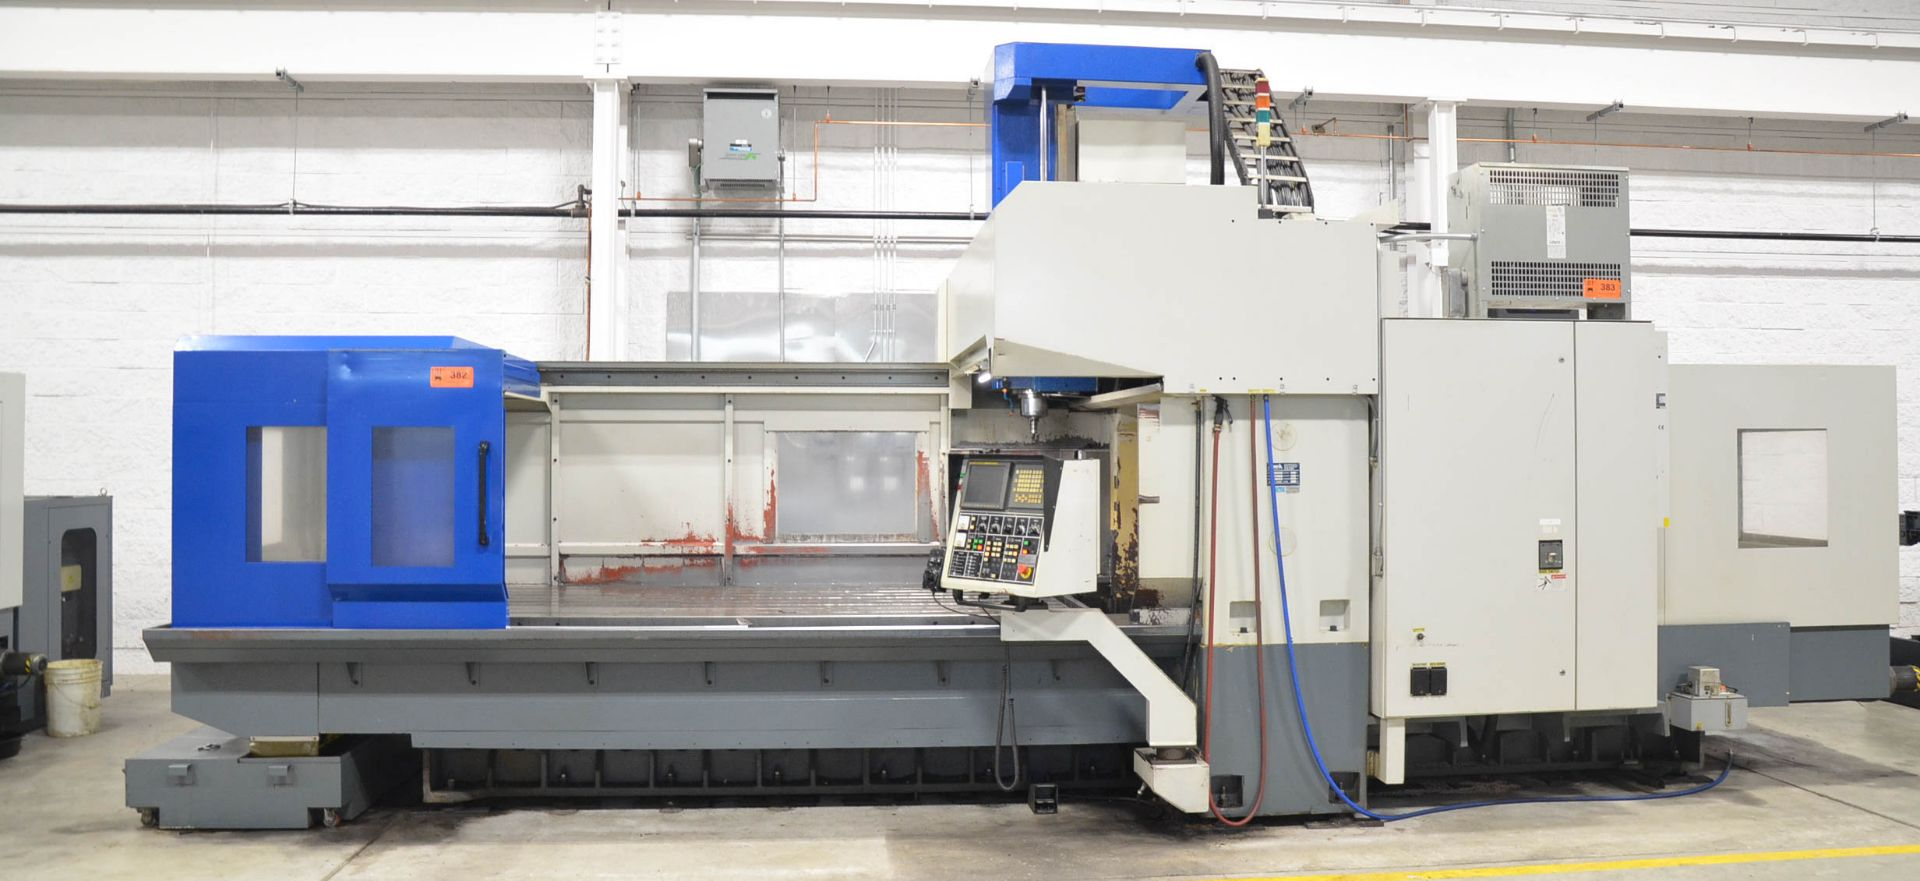 AWEA (2005) SP3016HSS GANTRY-TYPE CNC VERTICAL MACHINING CENTER WITH FANUC SERIES 18I-MB CNC - Image 2 of 12